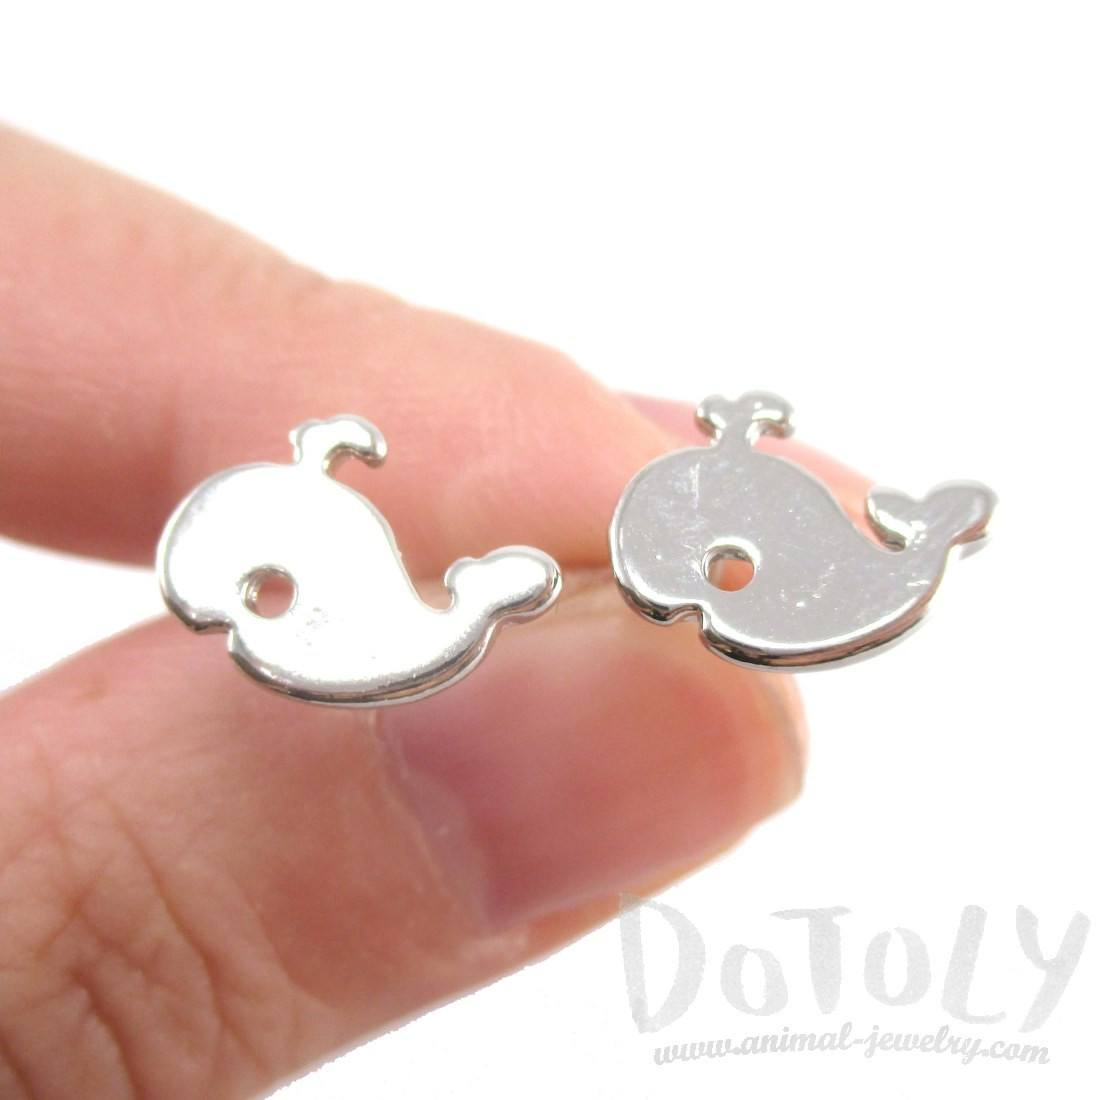 Small Whale Silhouette Shaped Stud Earrings in Silver